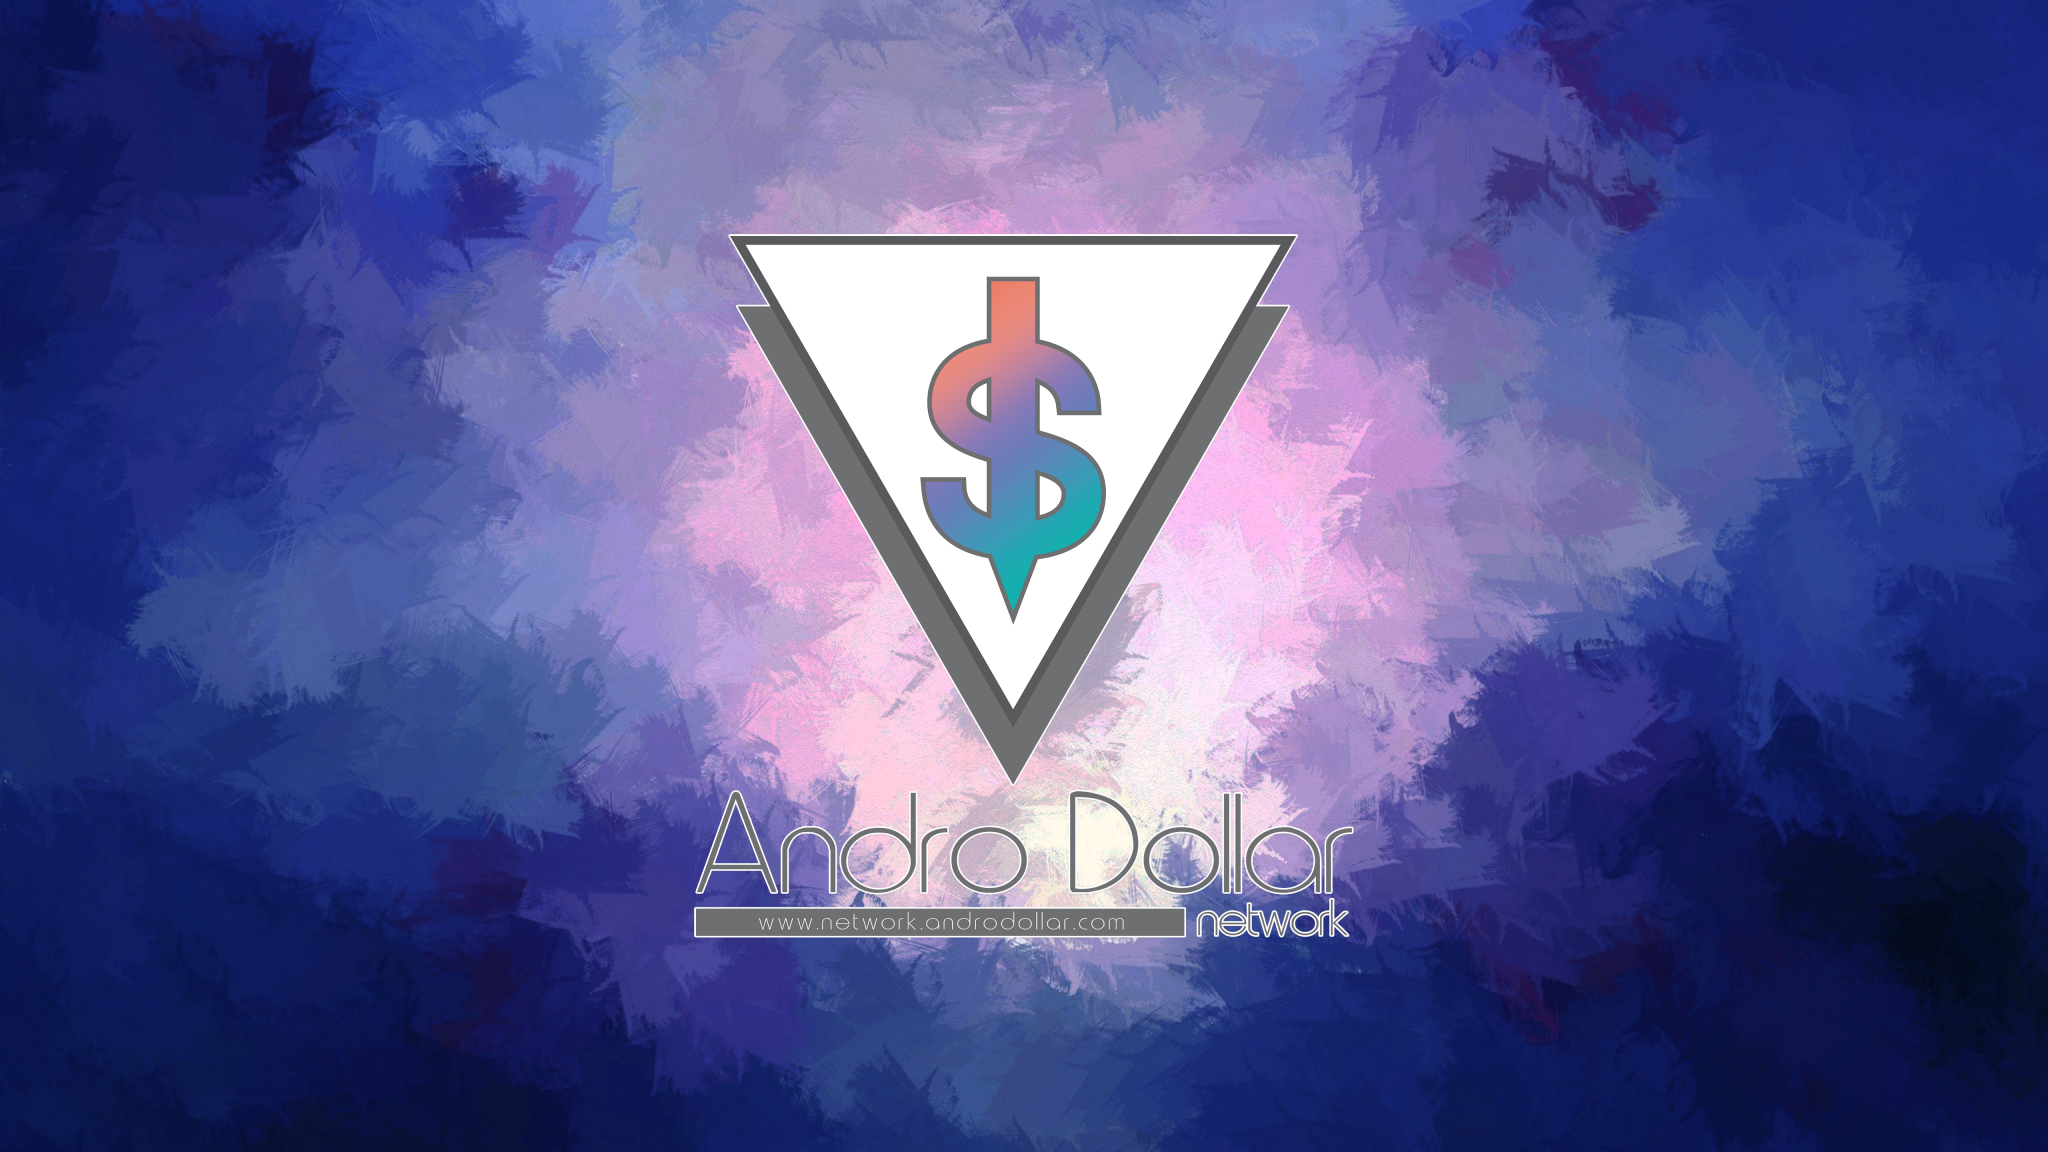 5K Andro Dollar Wallpaper - Andro Dollar Wallpaper